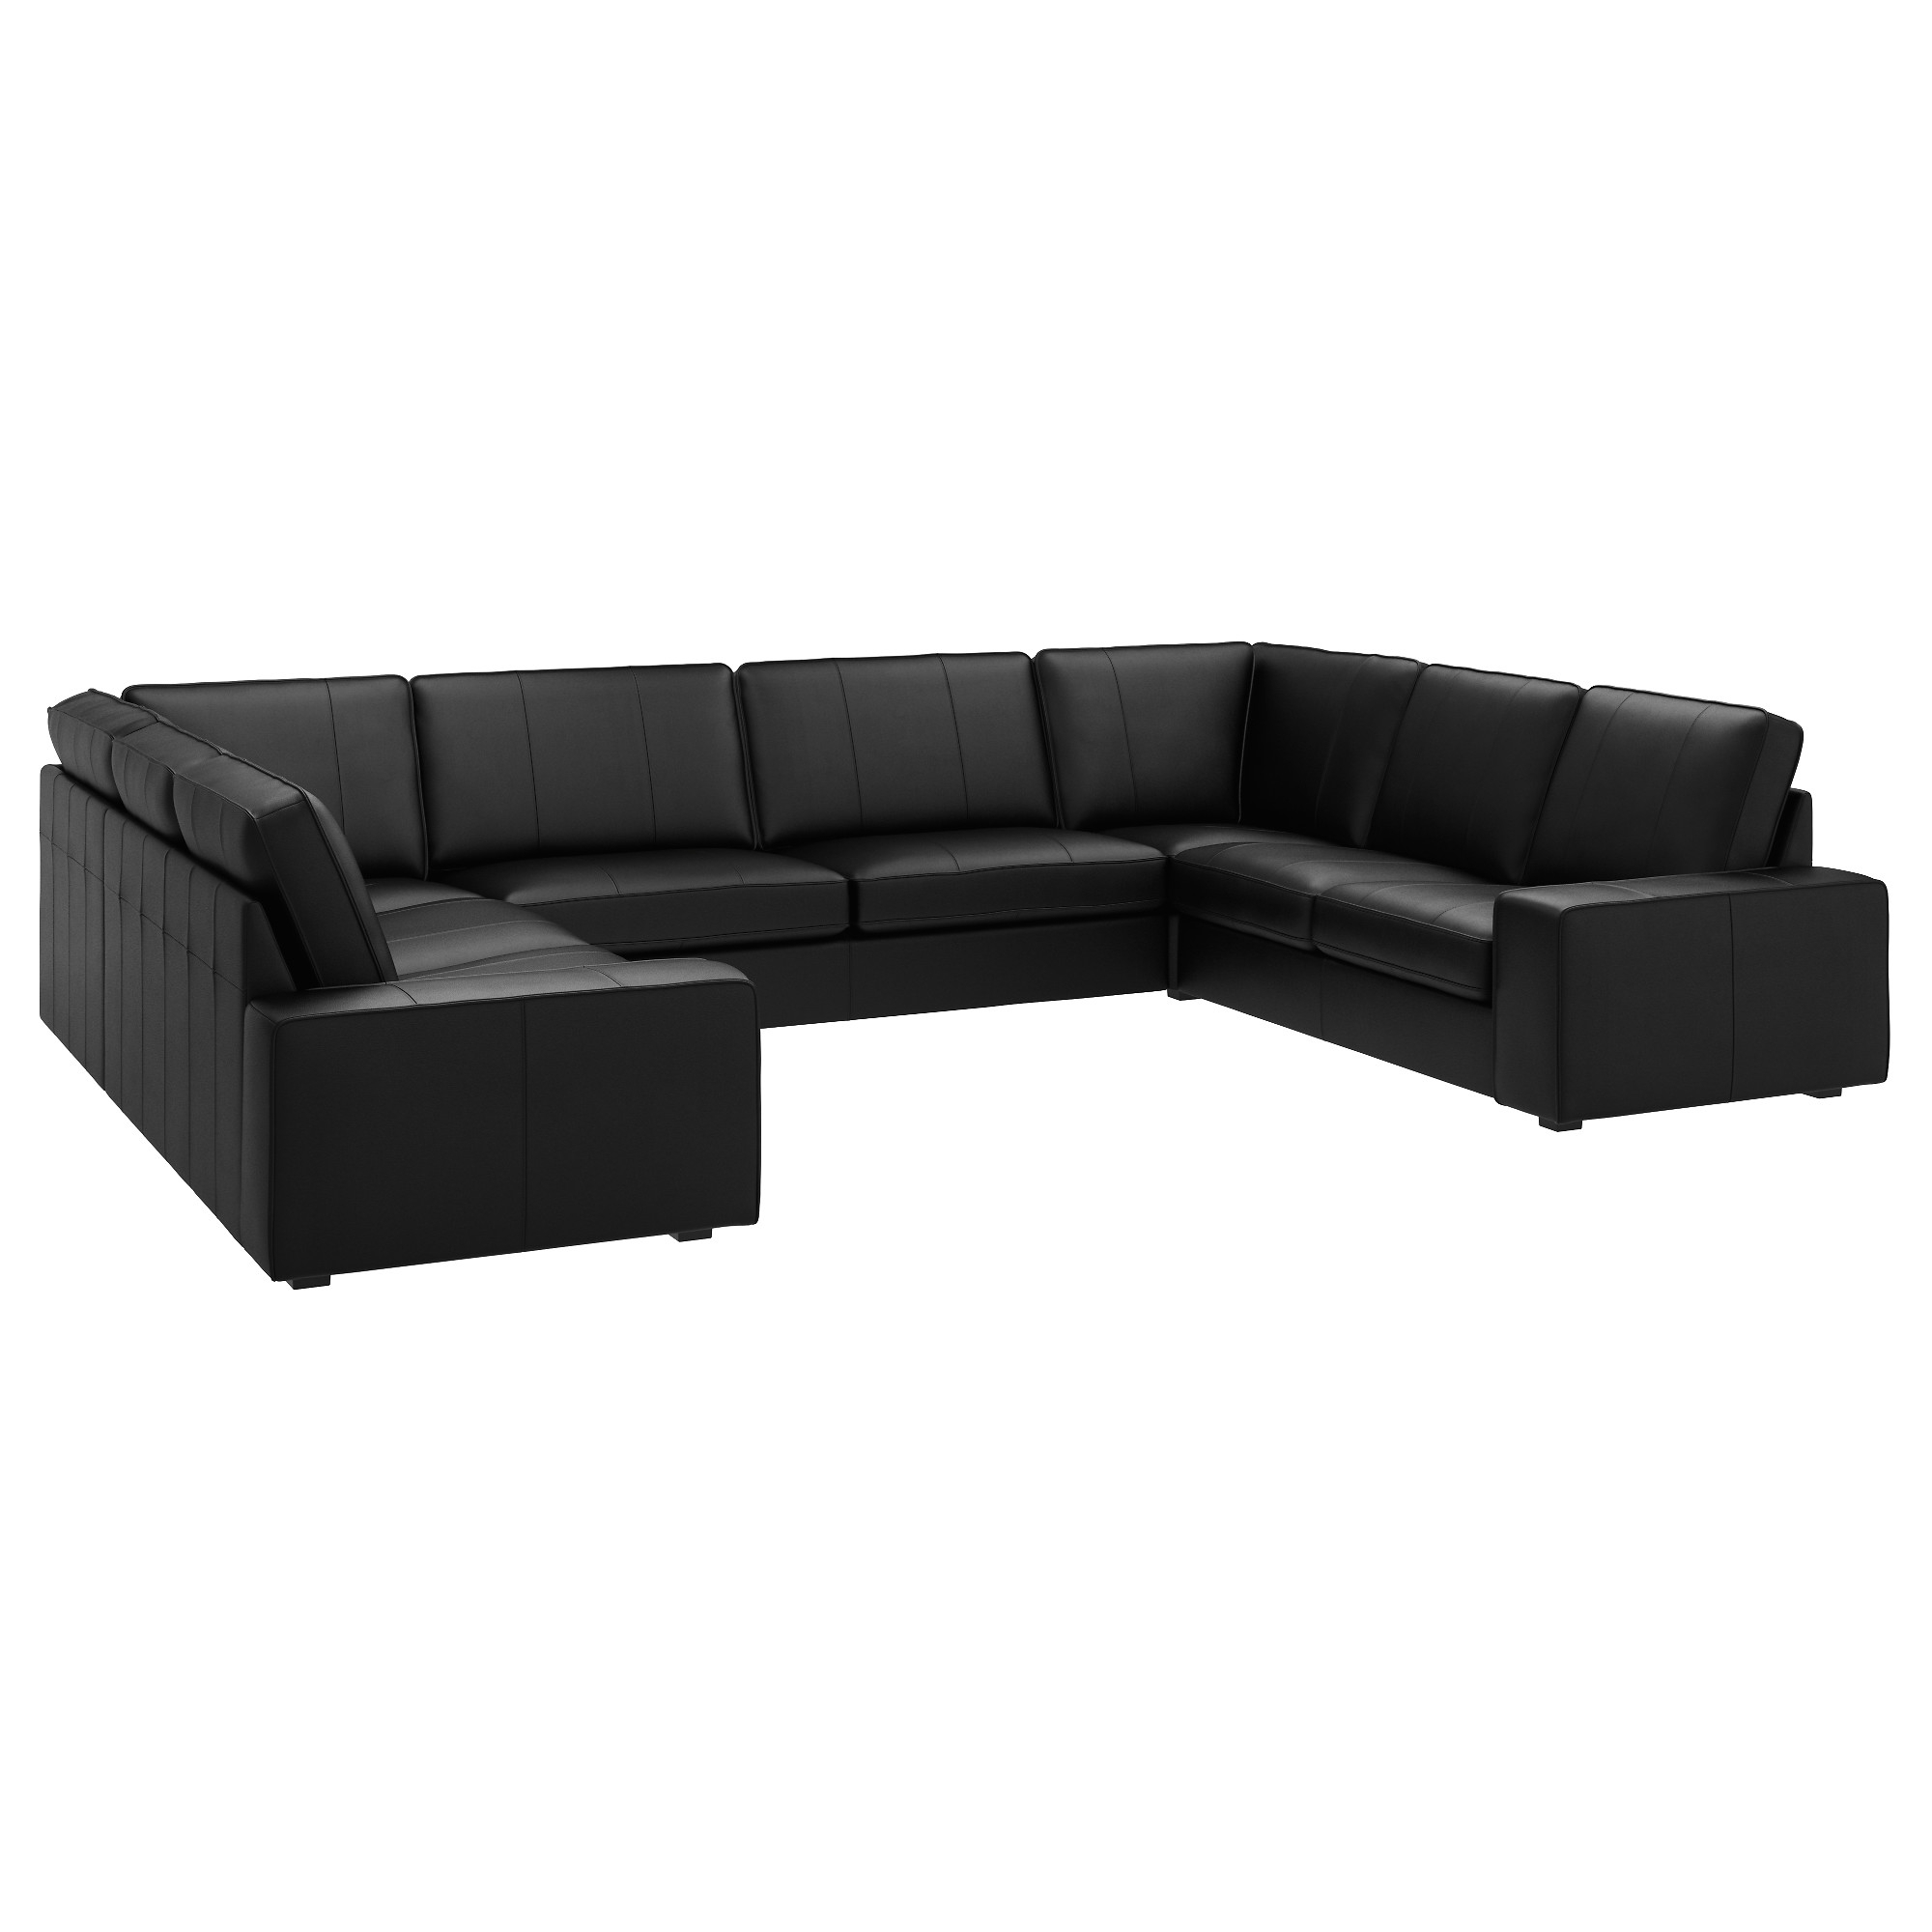 Famous Quatrine Sectional Sofas With Regard To 63 Most Endearing Kivik U Shaped Sofa Seat Grann Bomstad Black S (View 4 of 20)